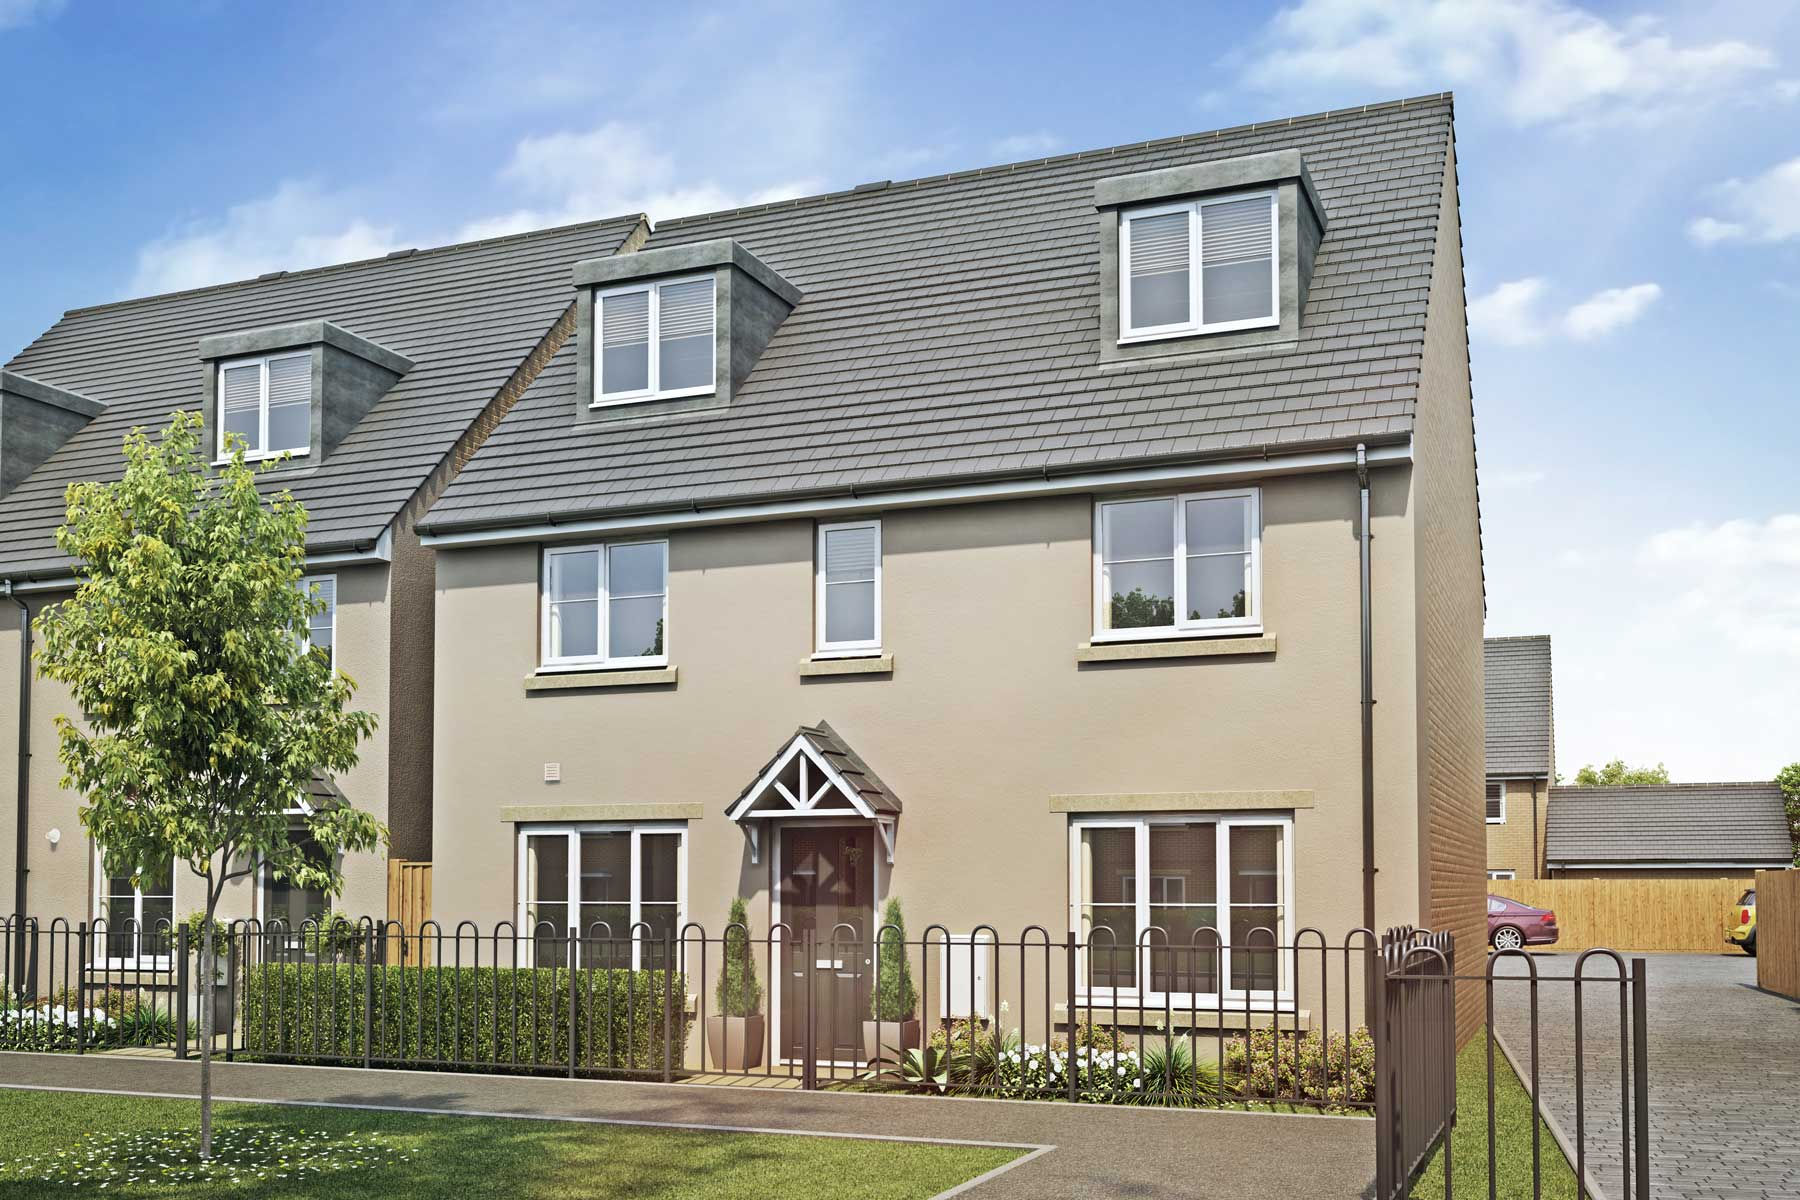 New Homes Bishops Stortford